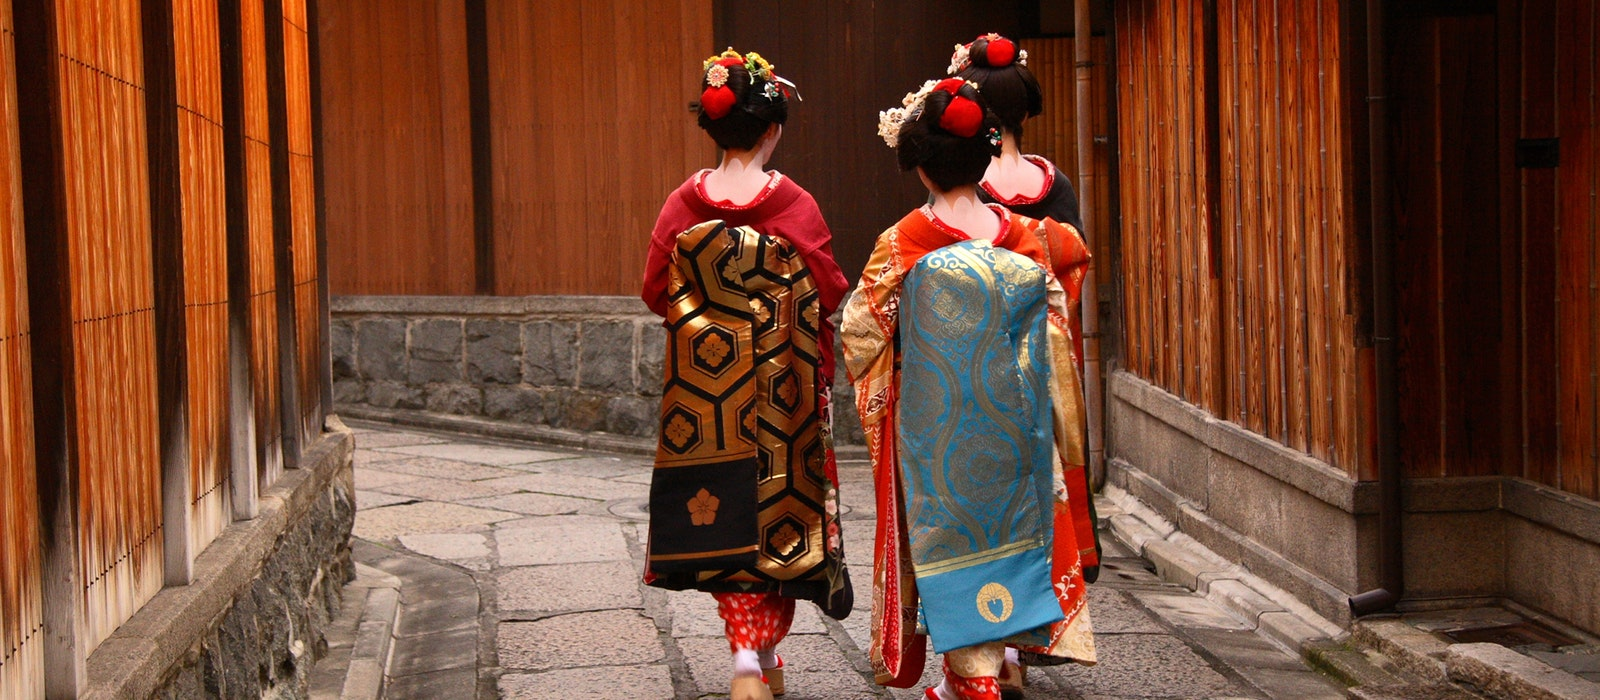 Expert tips can get you on the right path to a perfect vacation in Japan.